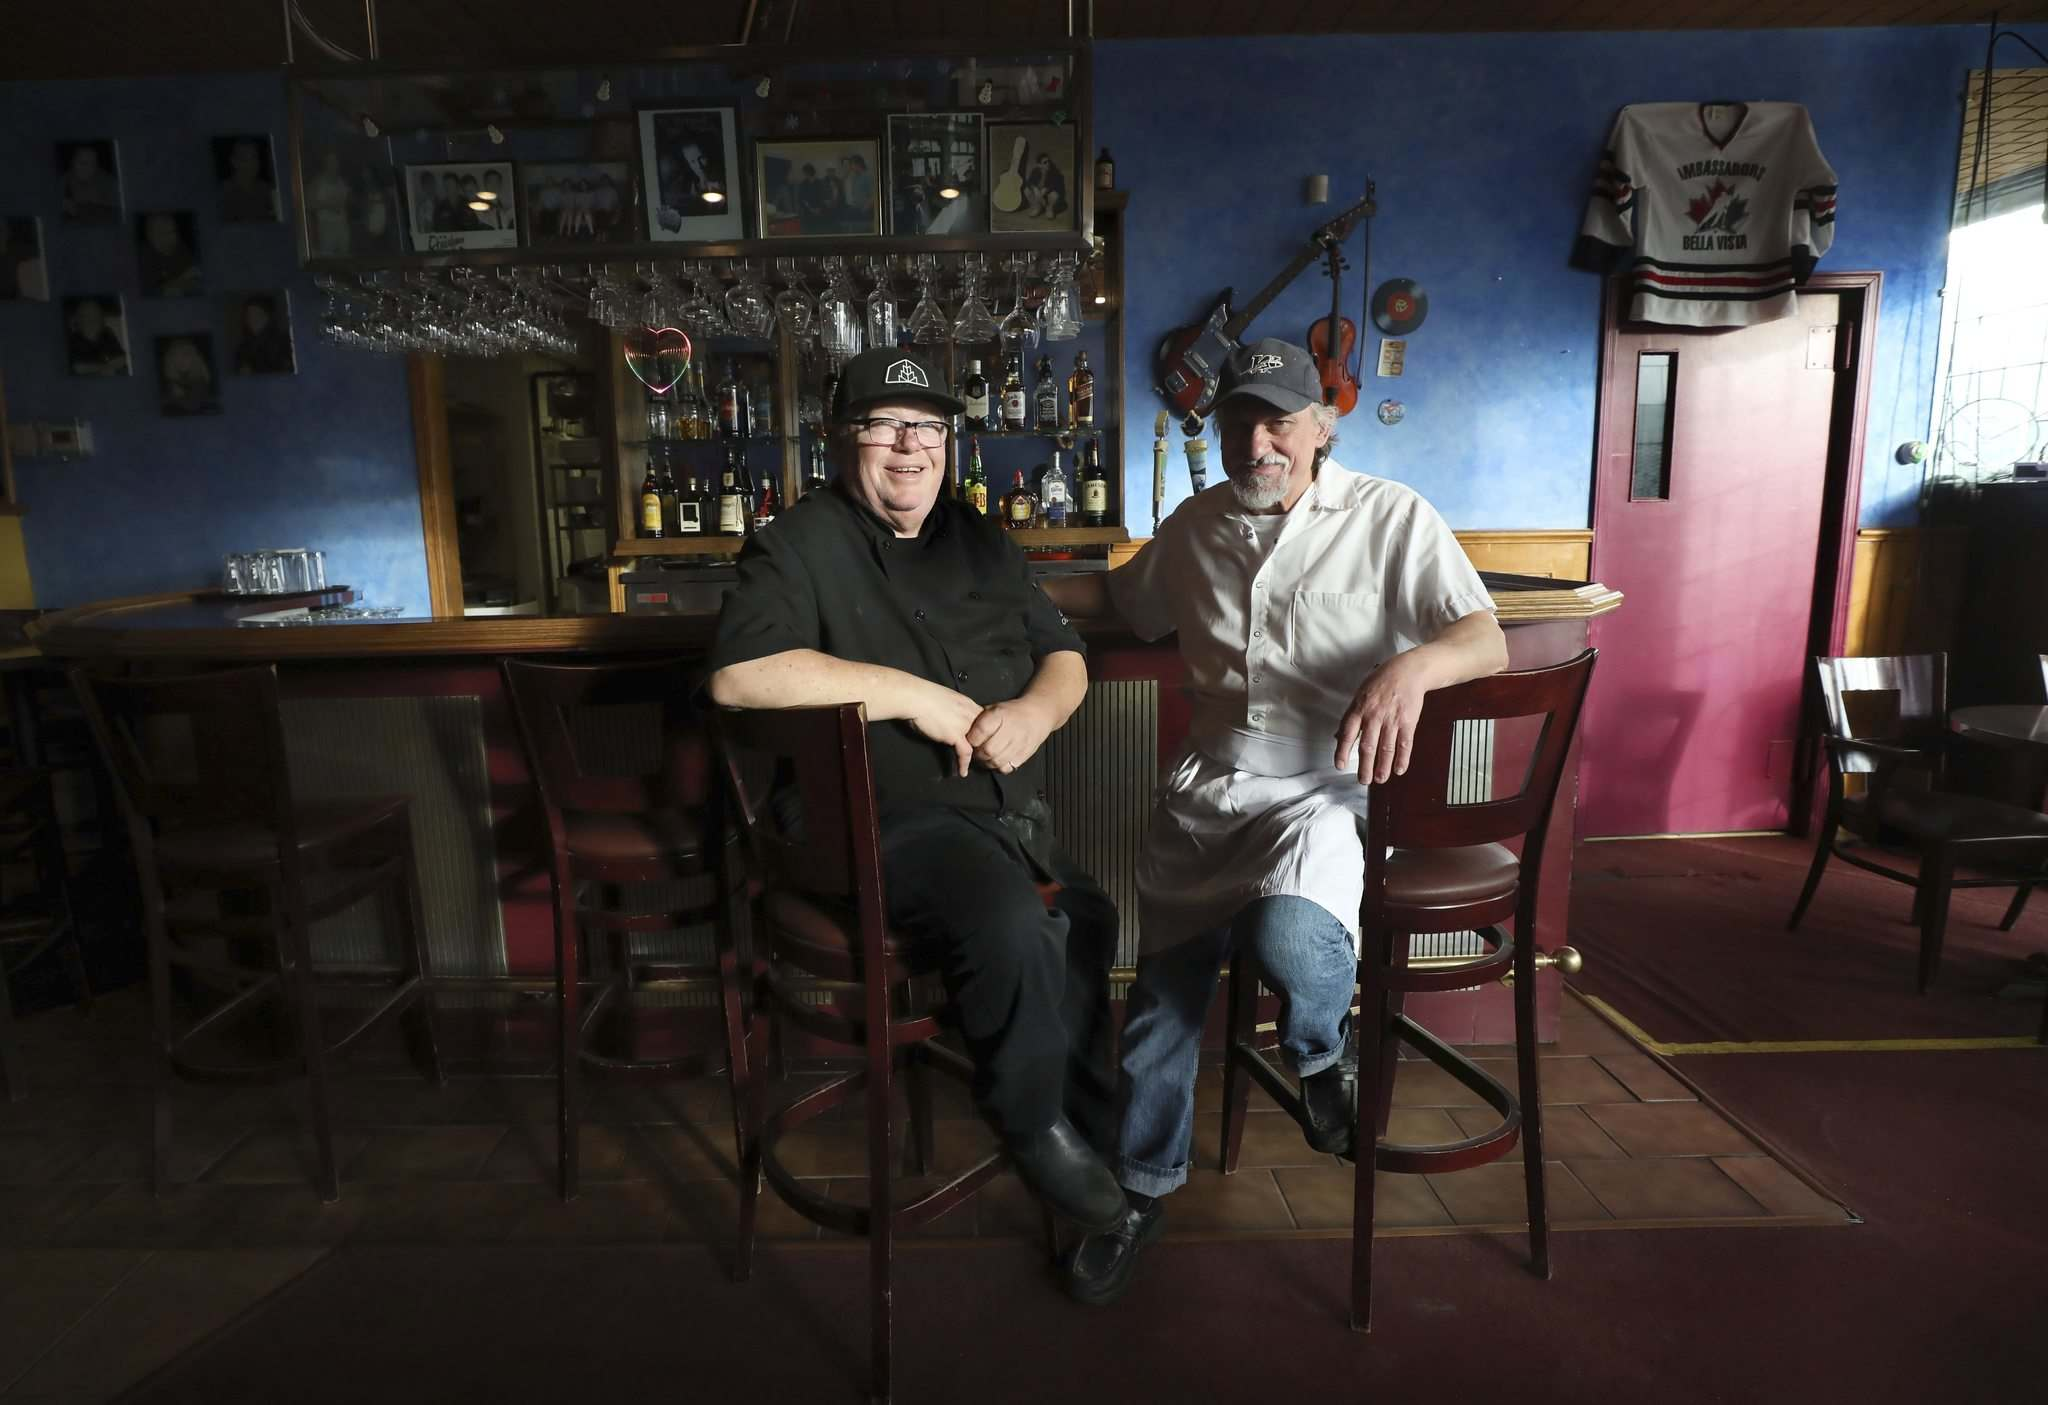 Colosimo (right) sold the Bella Vista to Jeffers, who will keep the Italian menu, but add breakfast and lunch options, along with an expanded beer selection. (Ruth Bonneville / Winnipeg Free Press)